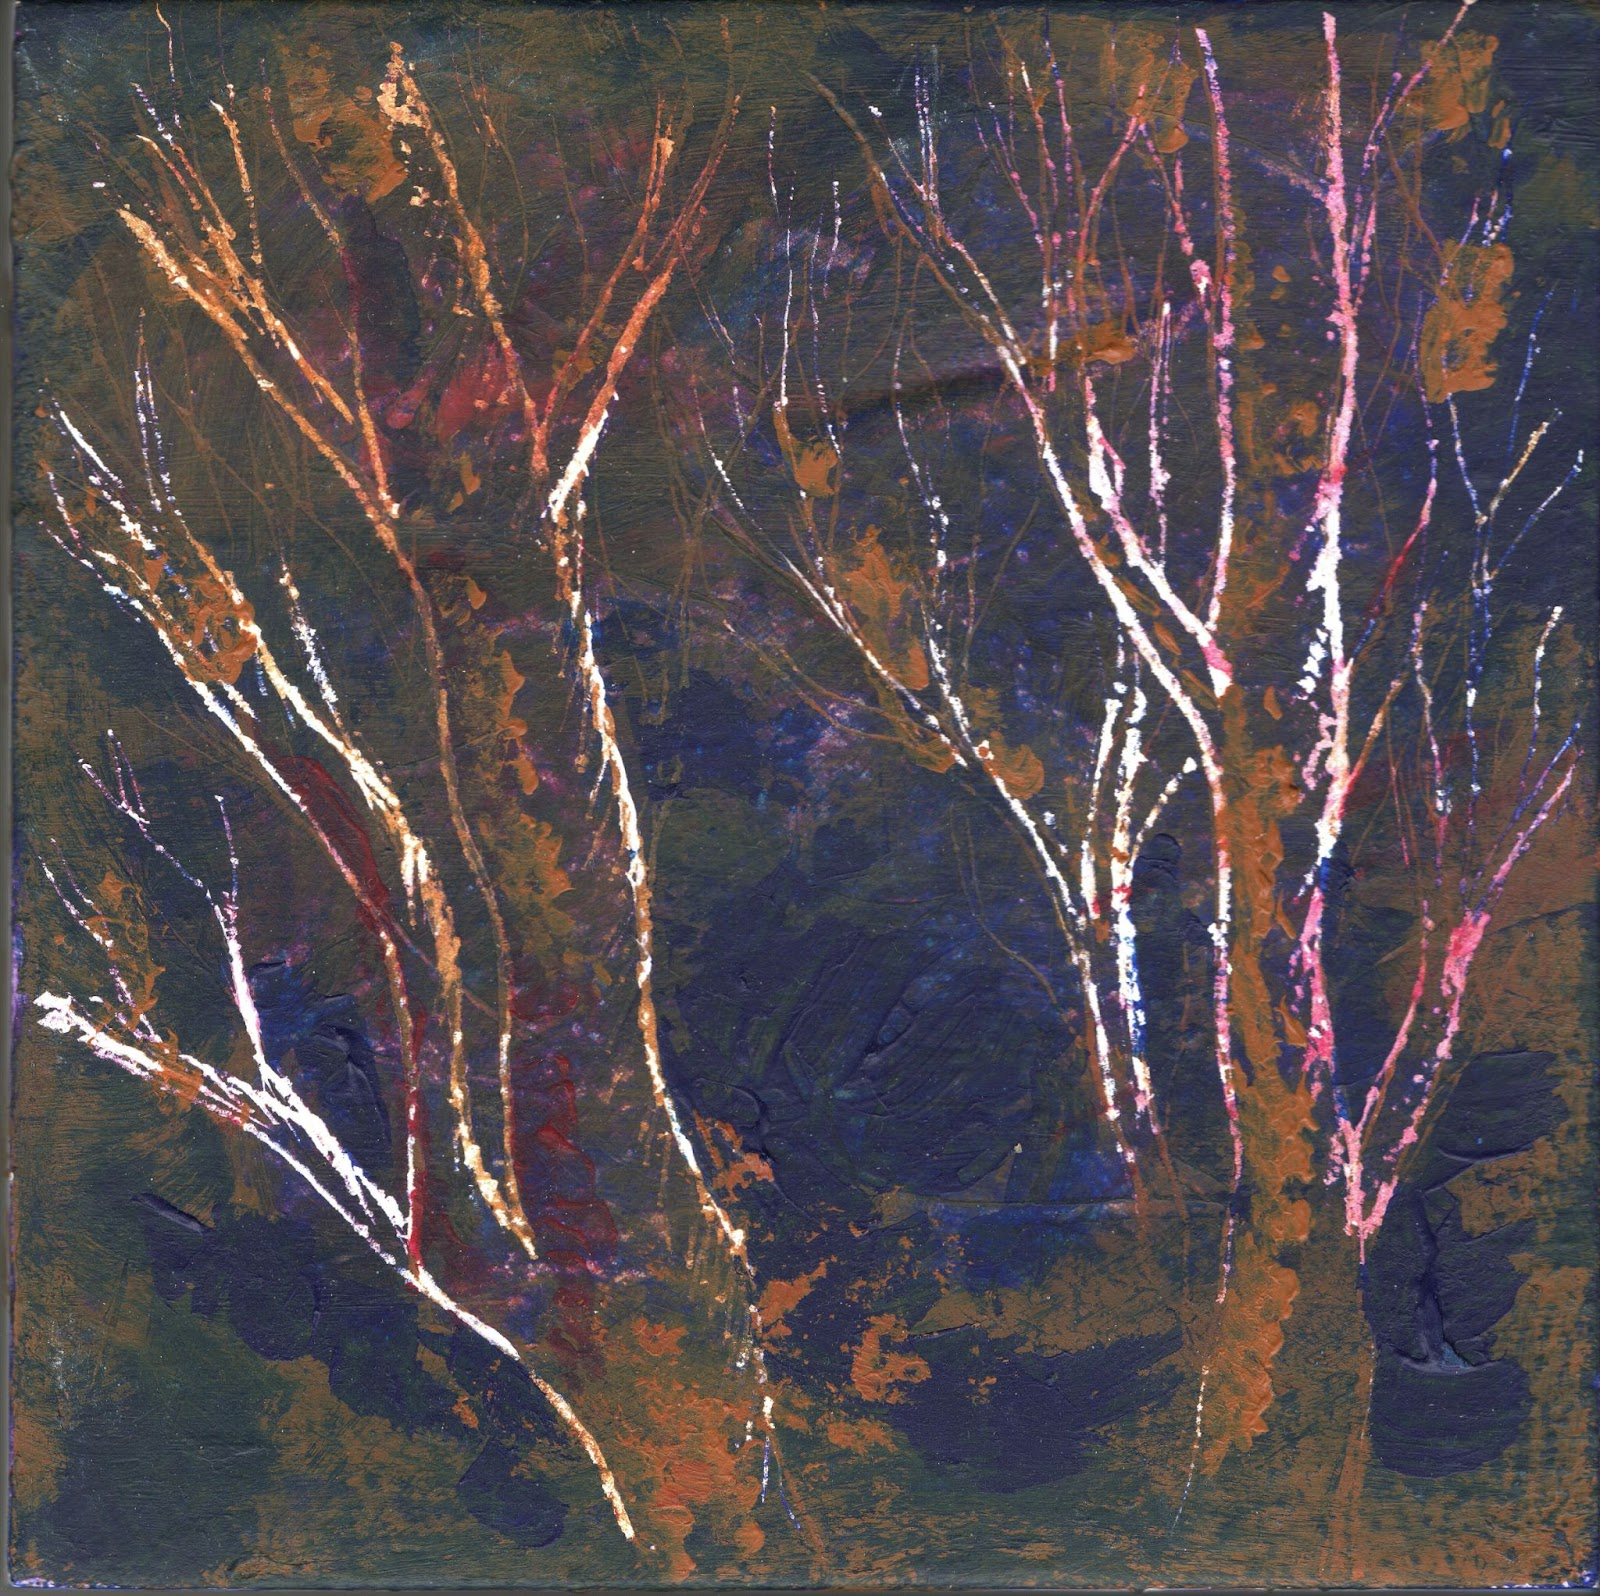 semi-abstract painting of tree trunks and branches with white lines and a dark blue and tan background